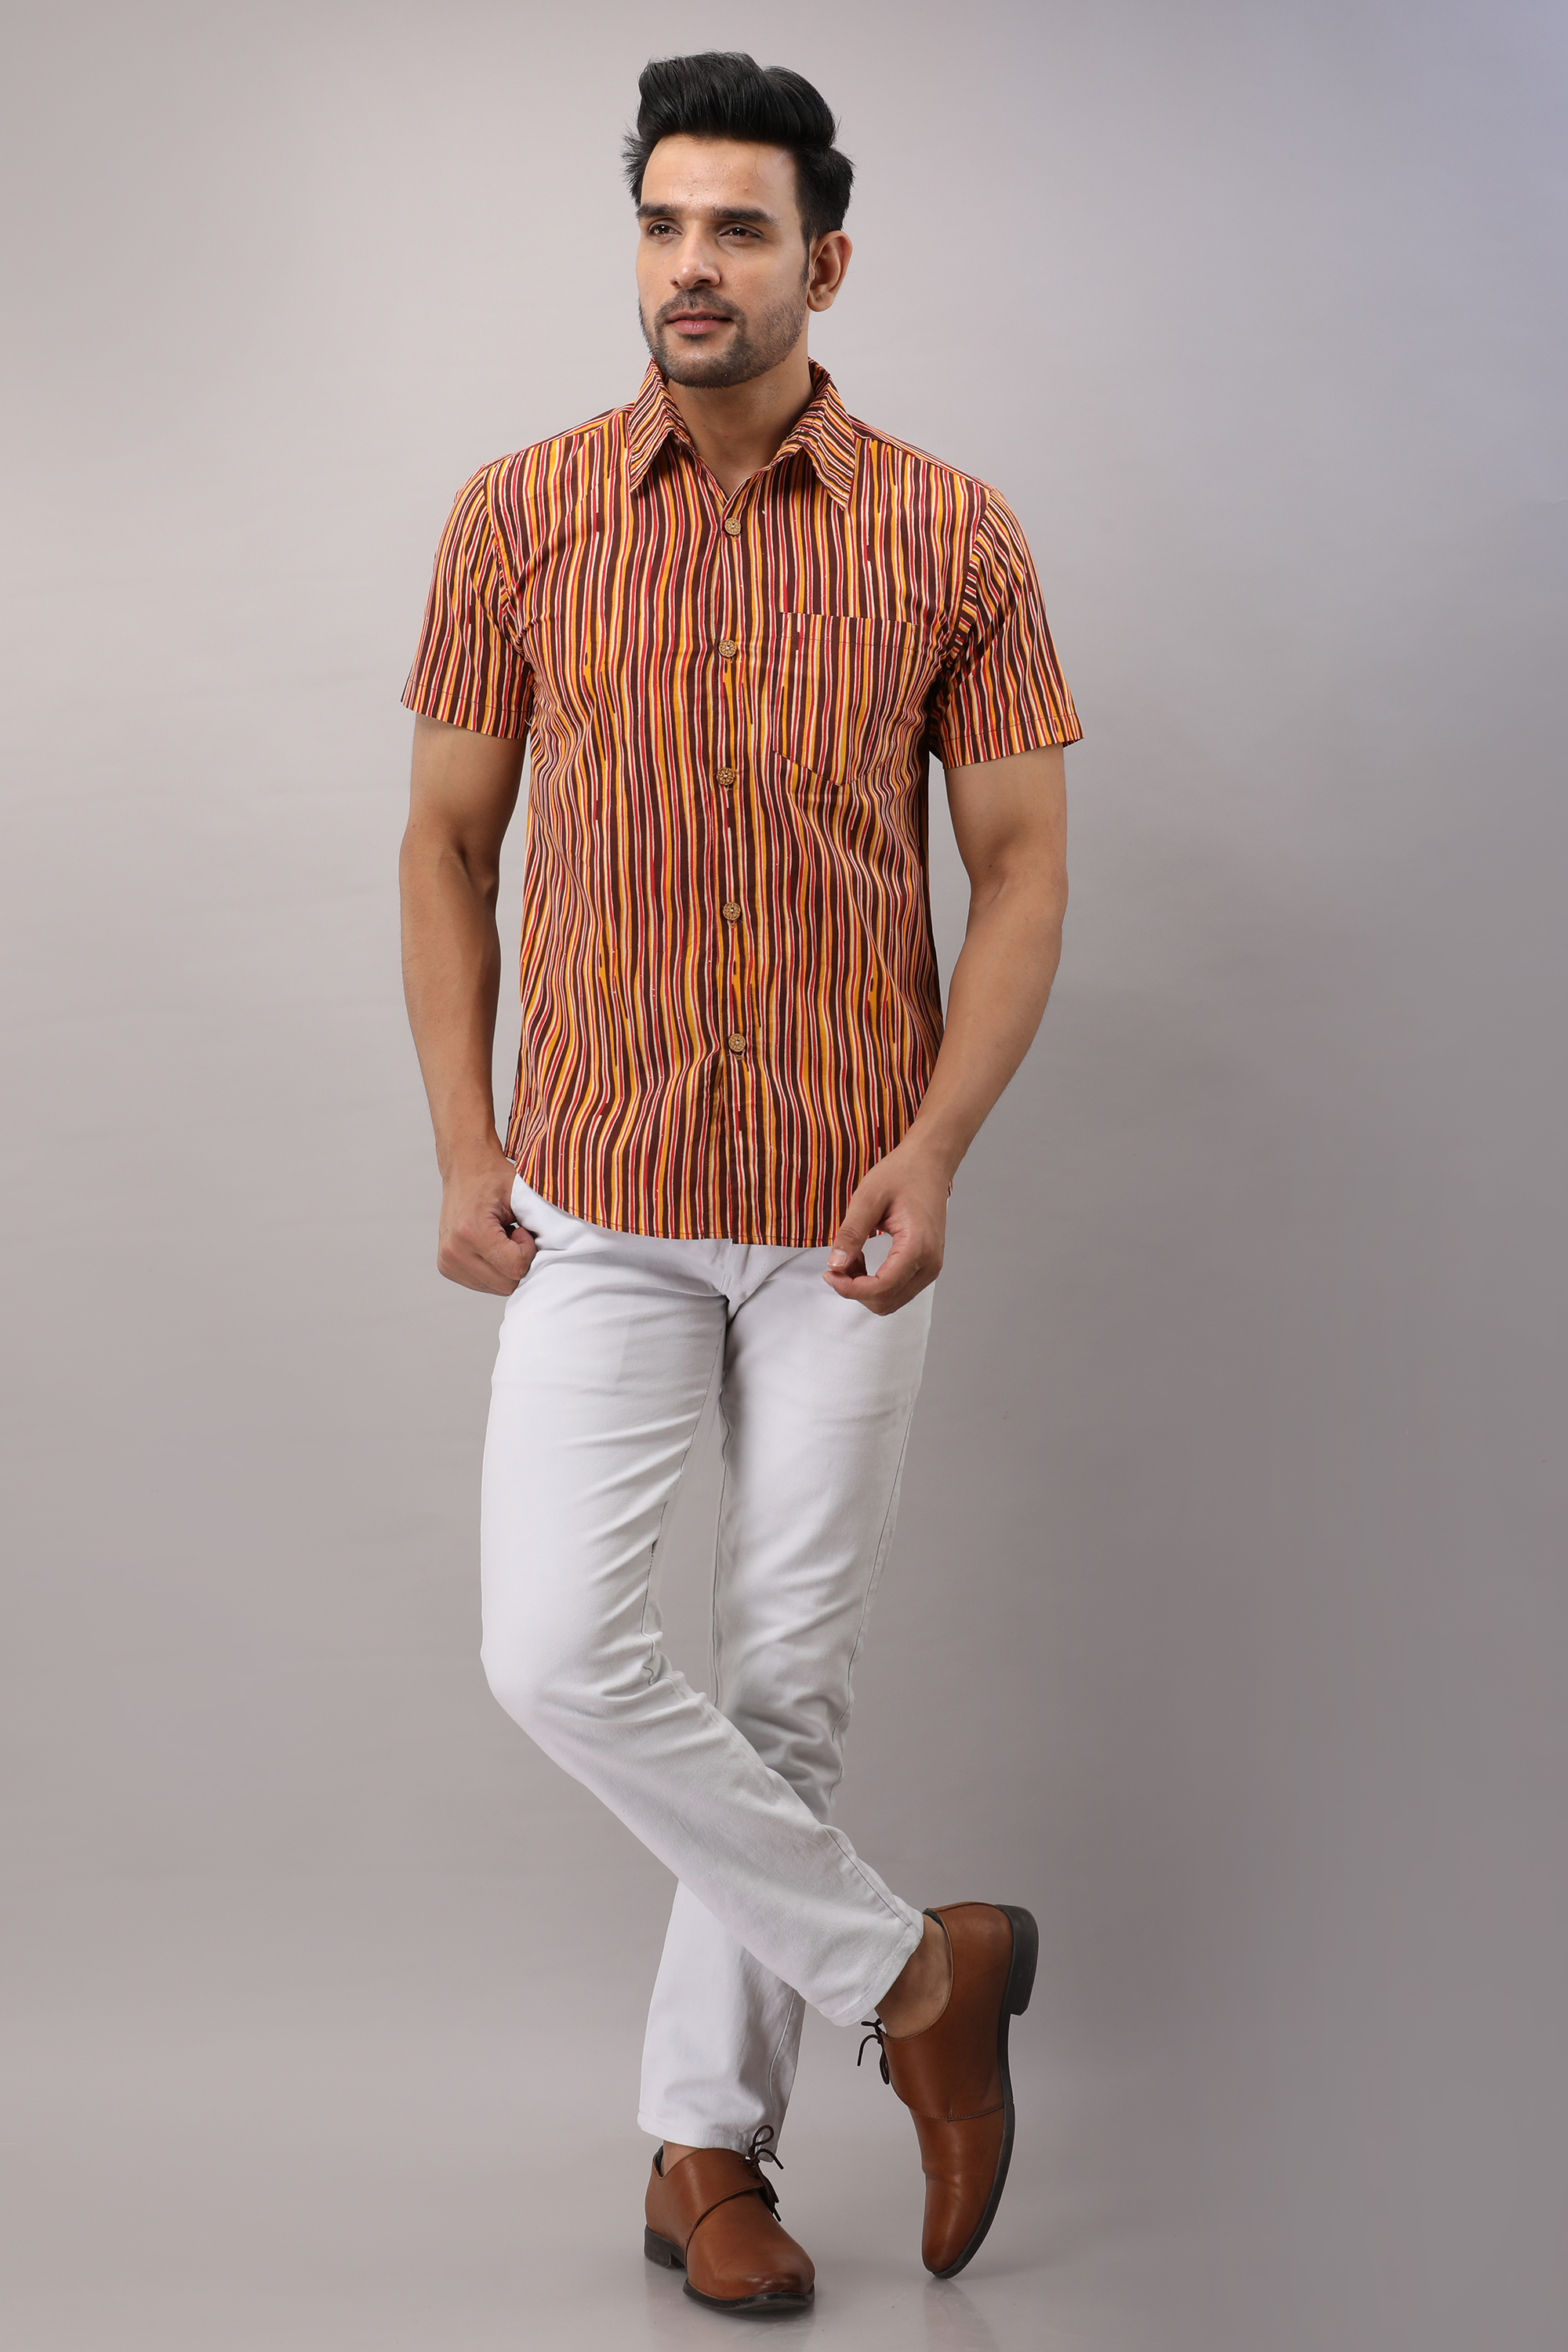 FrionKandy Cotton Striped Casual Multicolored Regular Shirt For Men - M